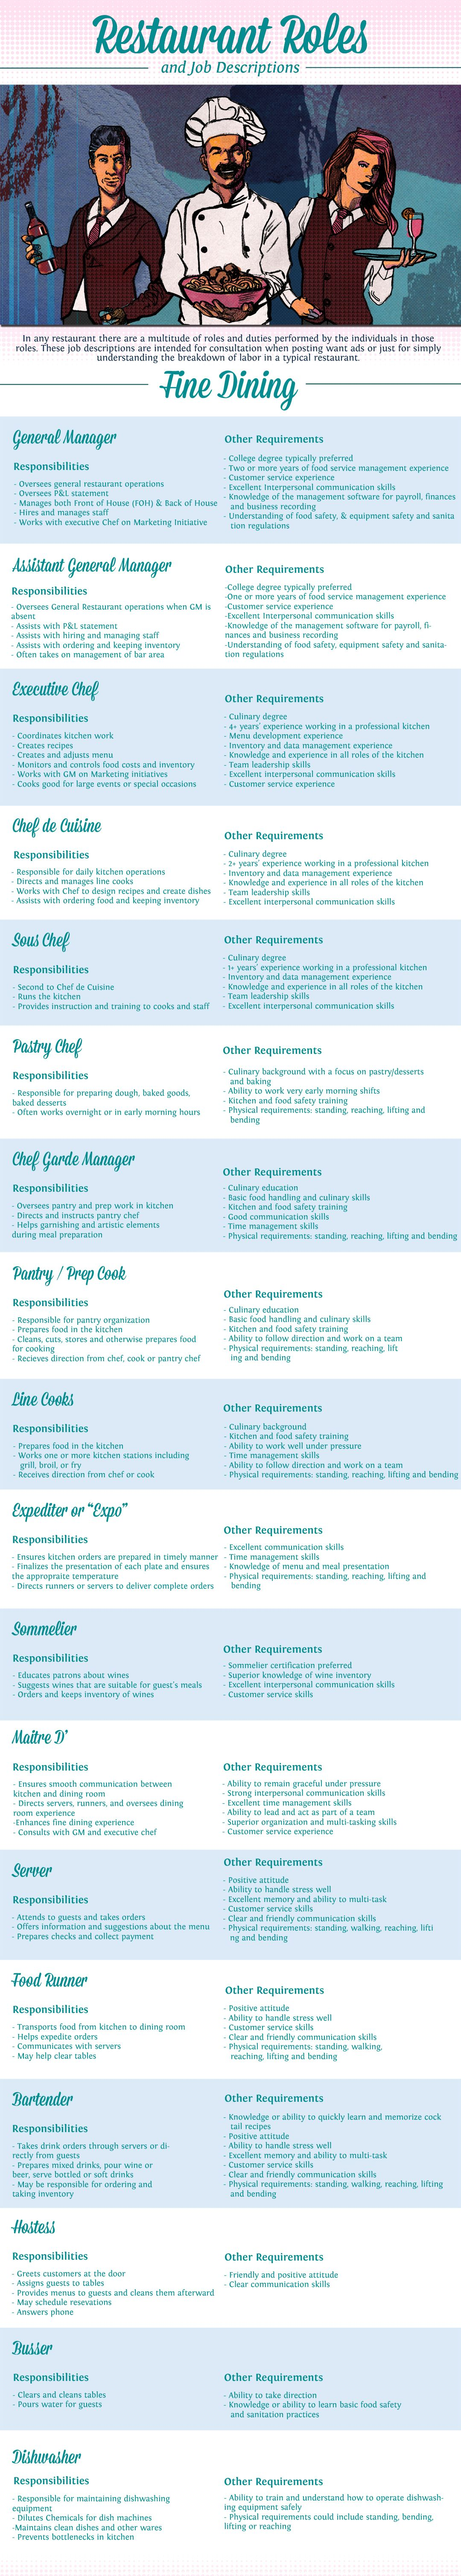 restaurant roles and job descriptions on the fly fsw facs restaurant roles and job descriptions on the fly fsw